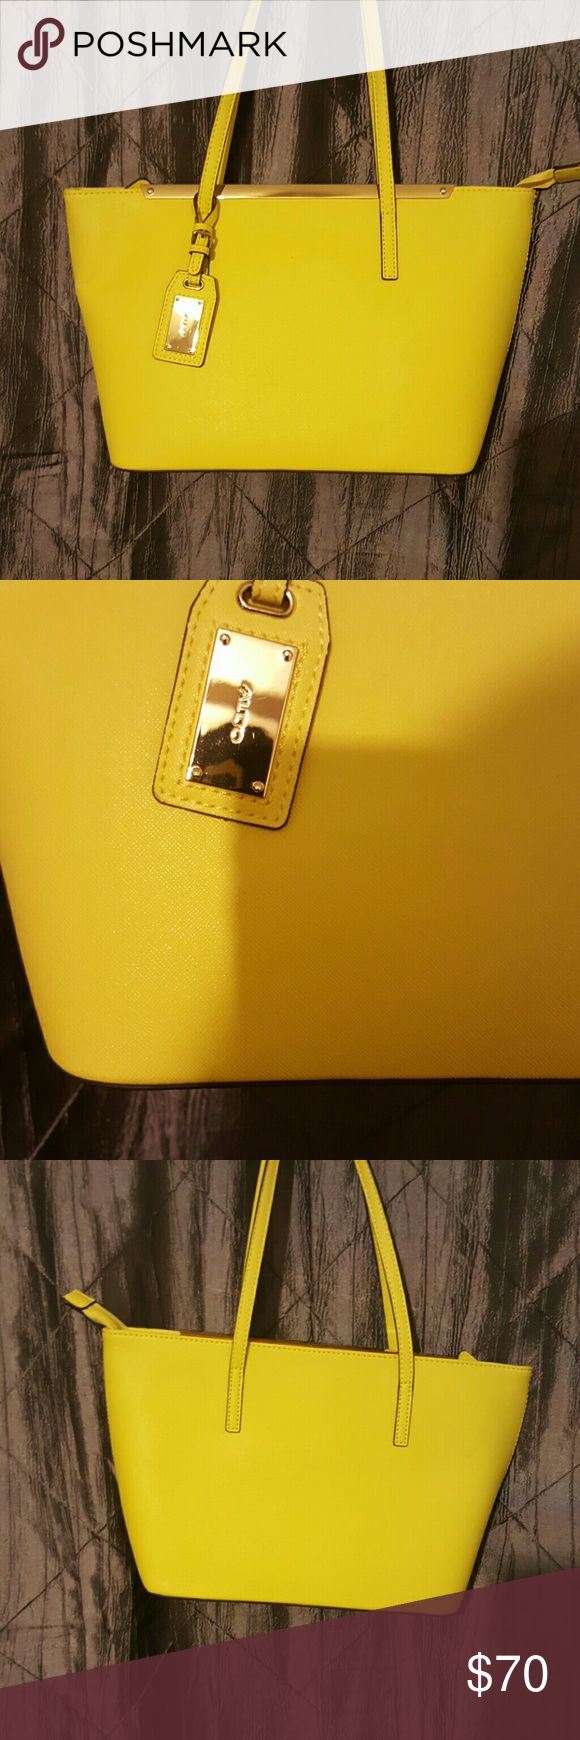 Aldo purse yellow gold purse medium size.   used 1 time to small for me. Aldo Bags Baby Bags